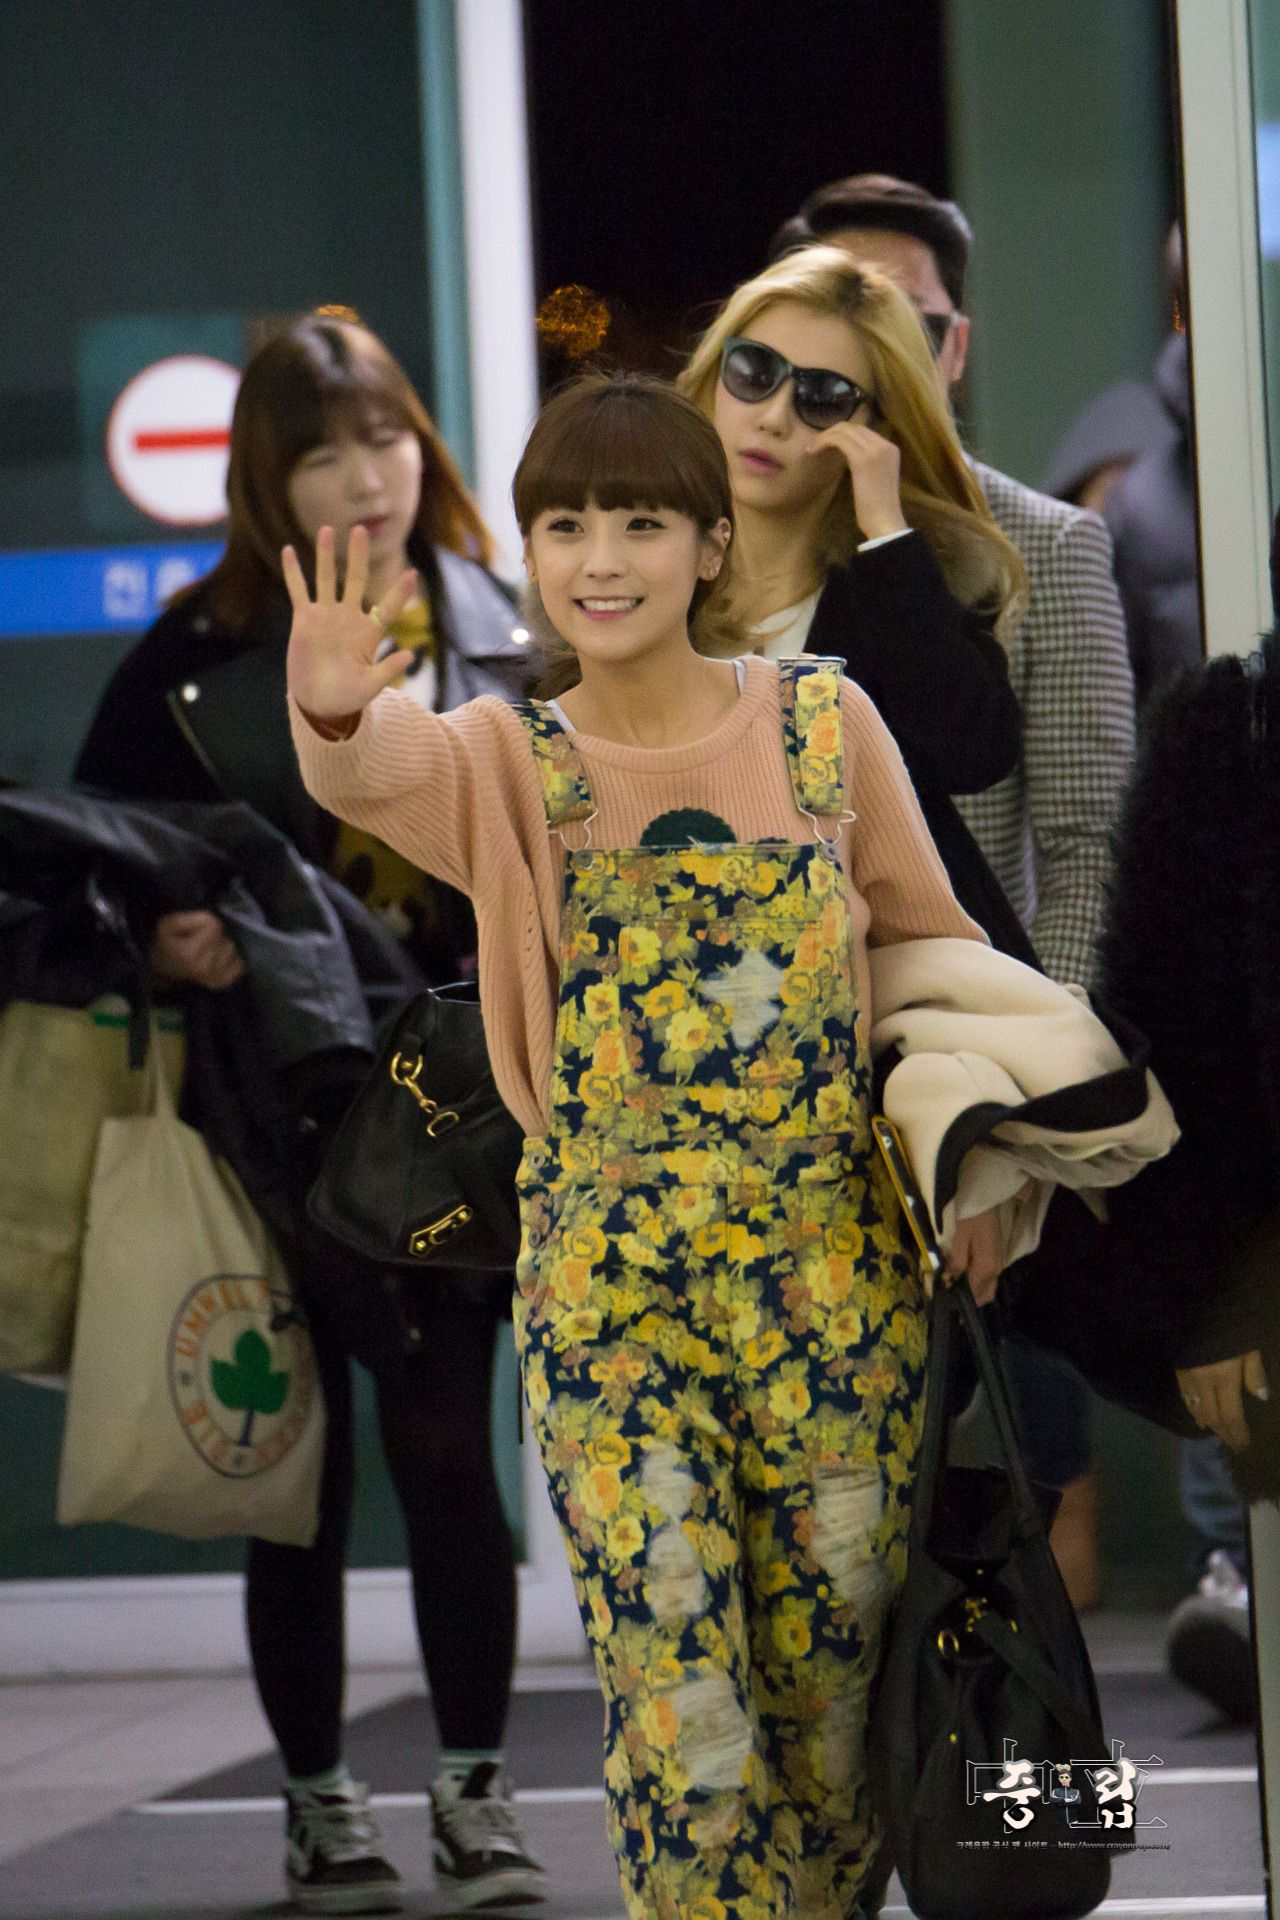 Airport Fashion Spotlight: Crayon Pops Soyul Ready for Spring Style! More: http://www.kpopstarz.com/articles/78274/20140210/airport-fashion-spotlight-crayon-pop-s-soyul-ready-spring-style.htm